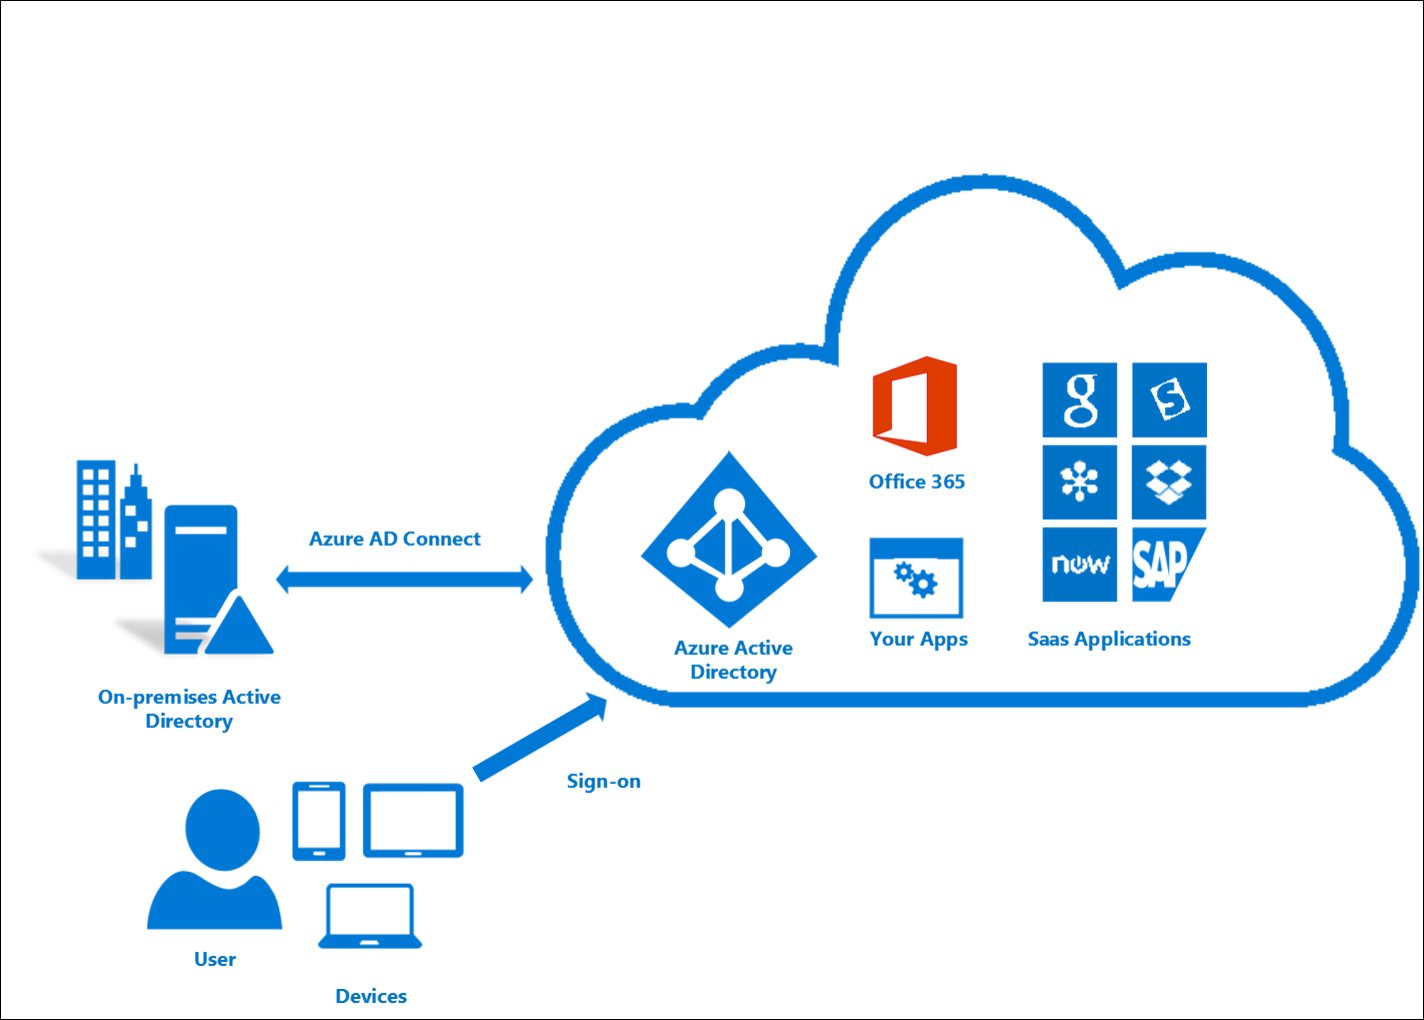 Azure Active Directory Connect on Basic Work Diagram Visio 2013